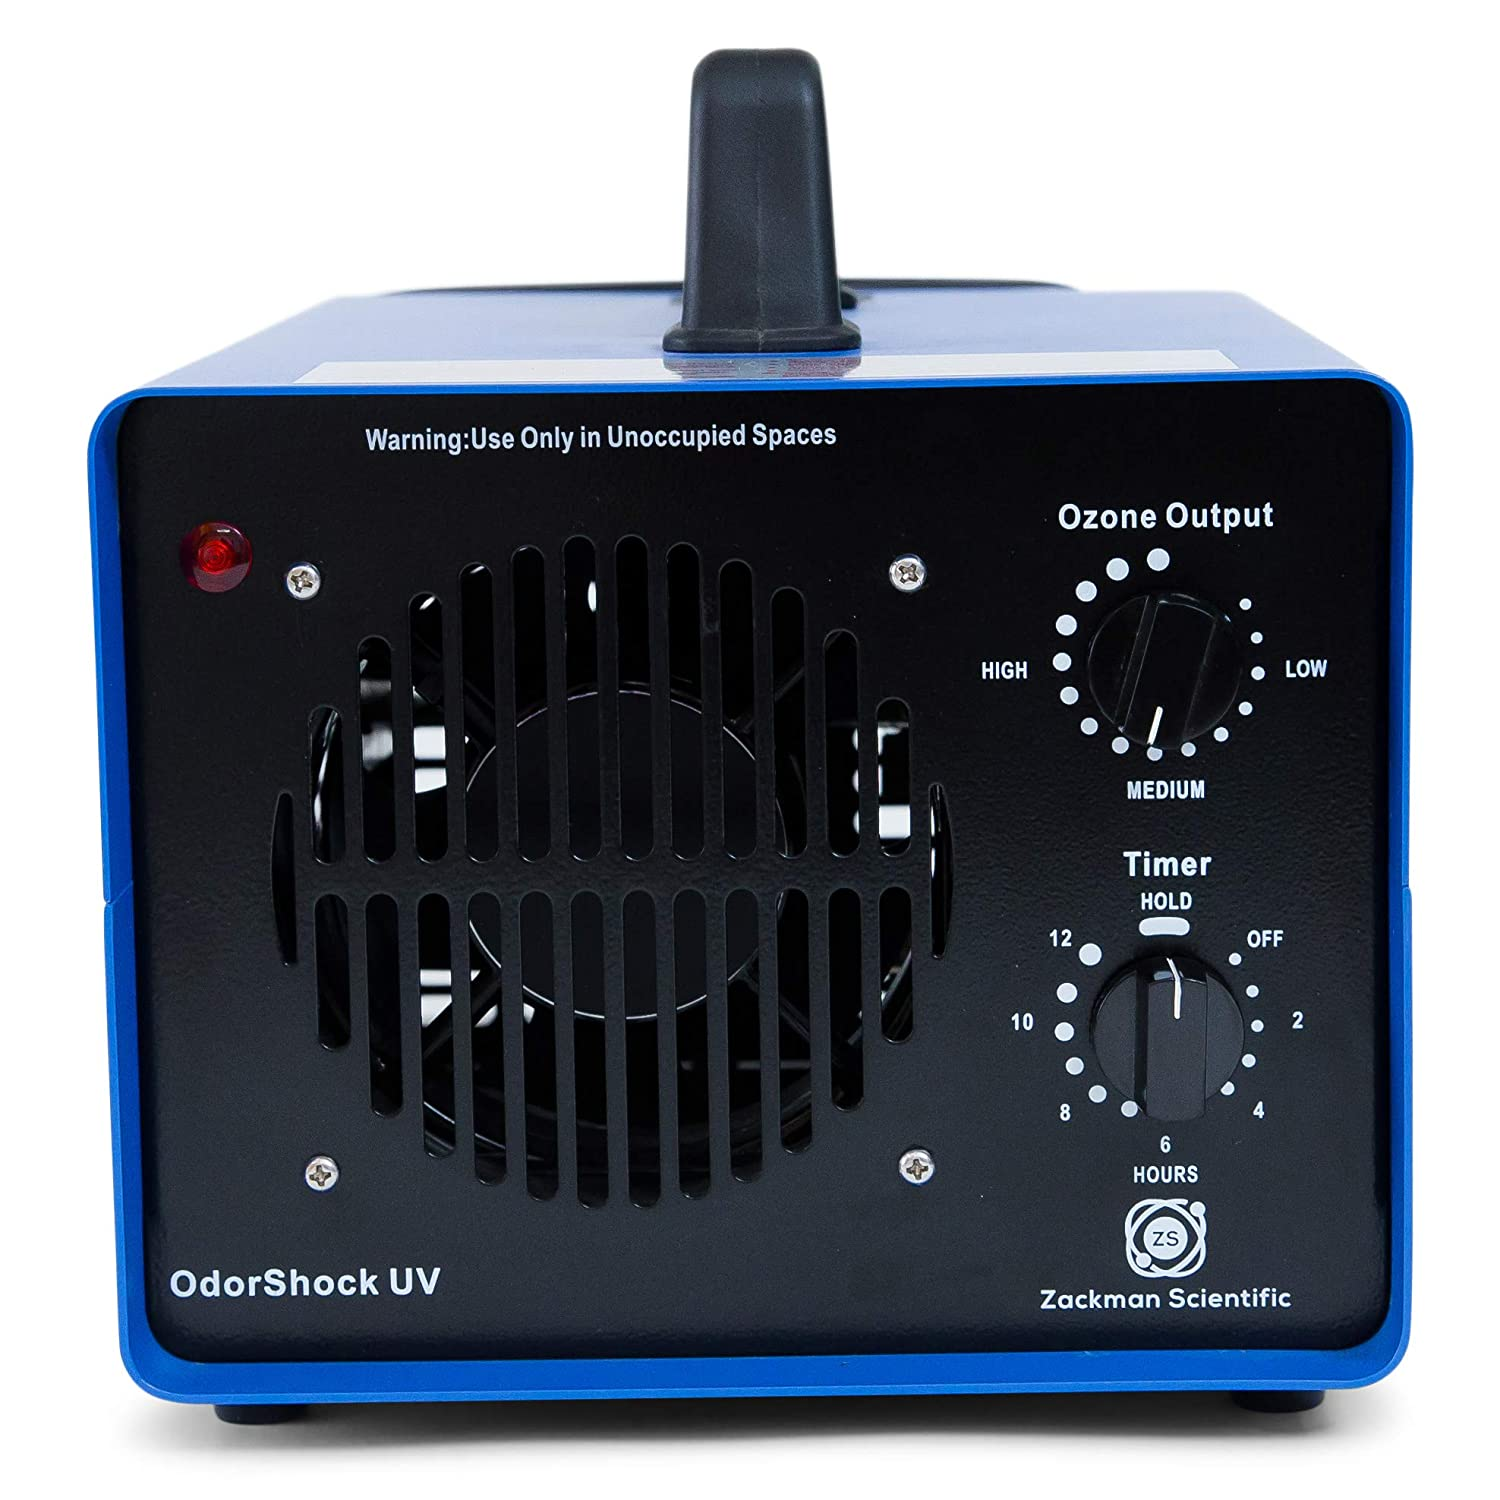 Zackman Odor Shock UV Ozone Generator Professional O3 Air Purifier Heavy Duty Air Cleaner, Deodorizer and Sterilizer Kill Mold, Permanently Removing Tobacco, Pet and Musty Odors at Their Source